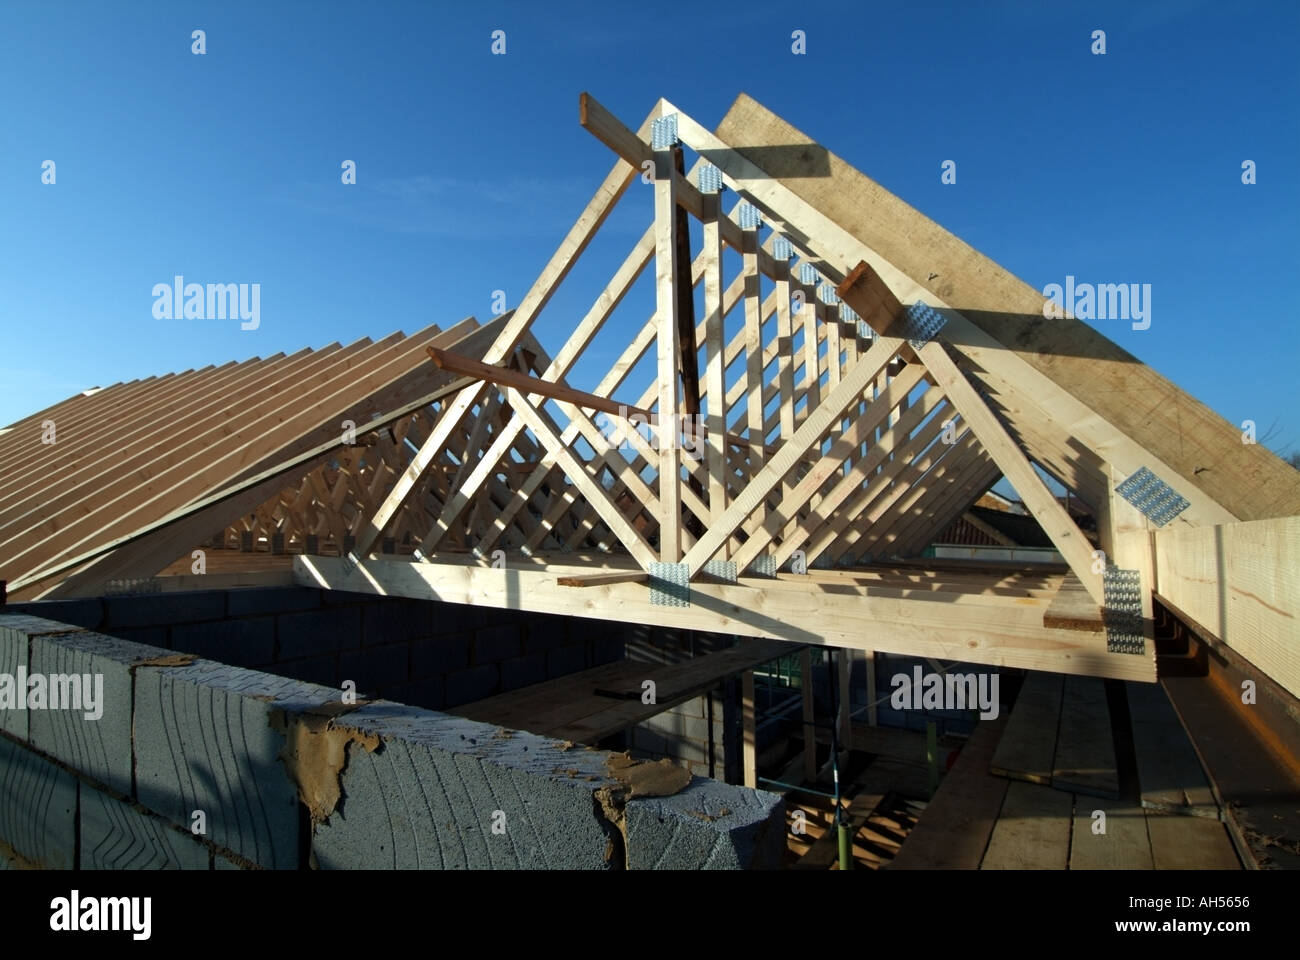 Detached house work in progress fixing prefabricated roof for Prefabricated wood trusses